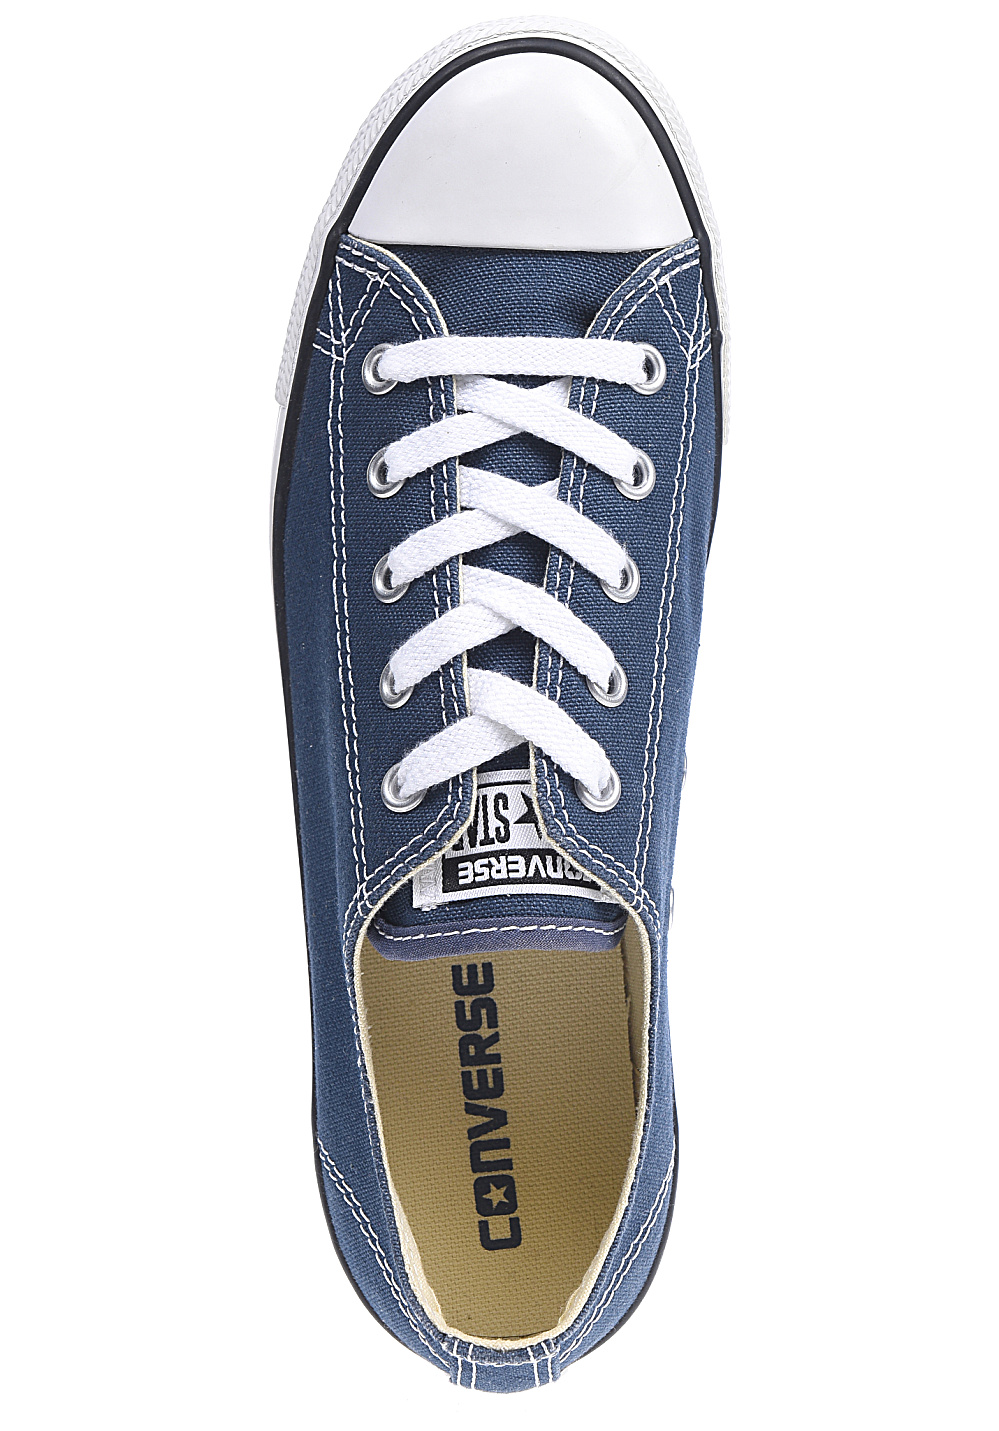 Converse Chuck Taylor All Star Dainty Ox - Sneakers for Women - Blue ... 2e950a815